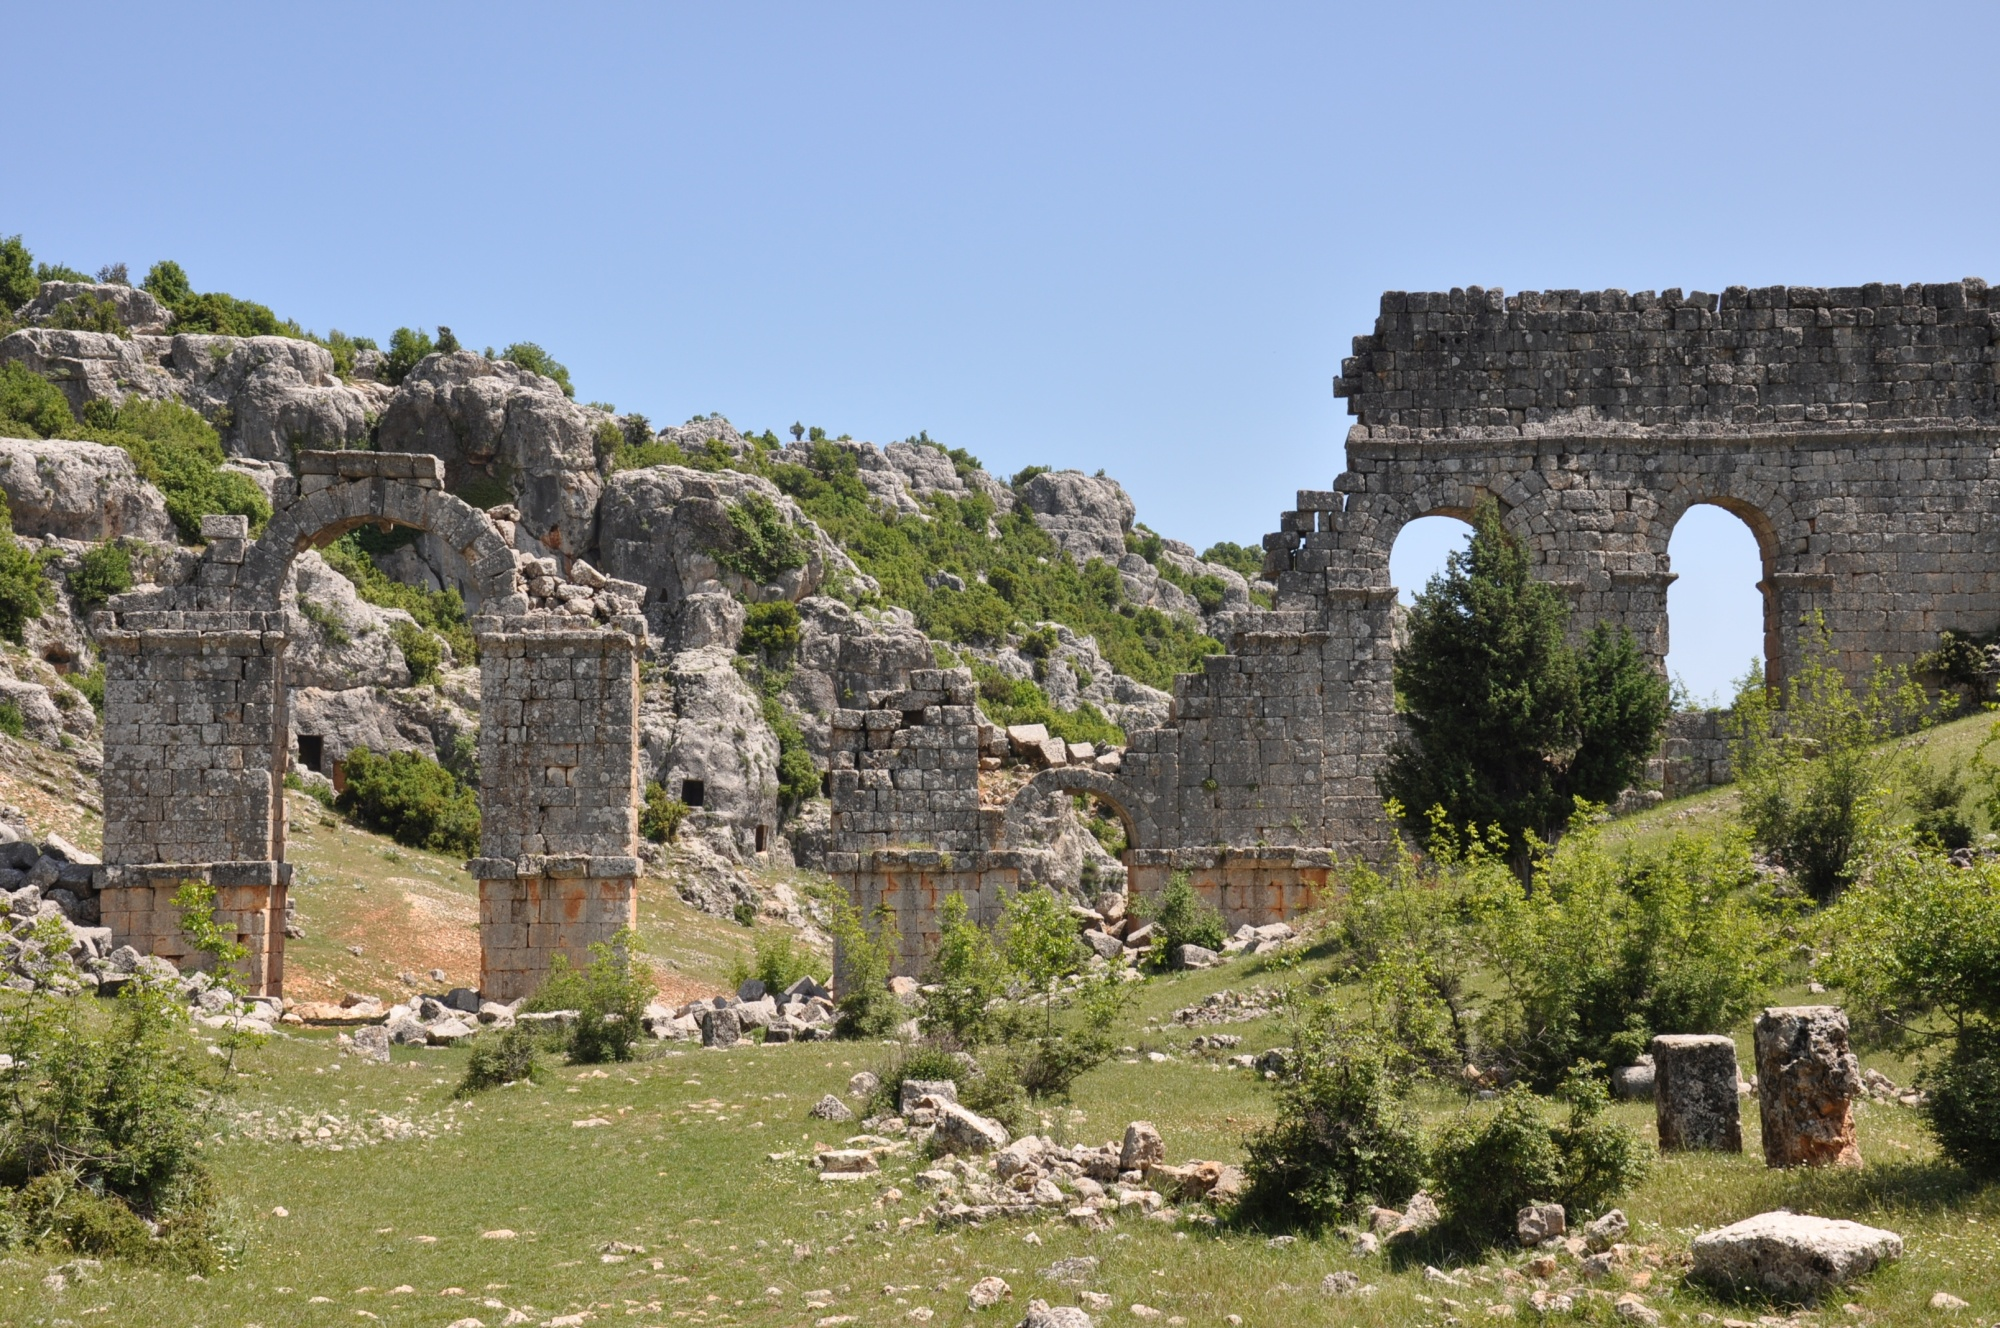 The aqueduct in Olba